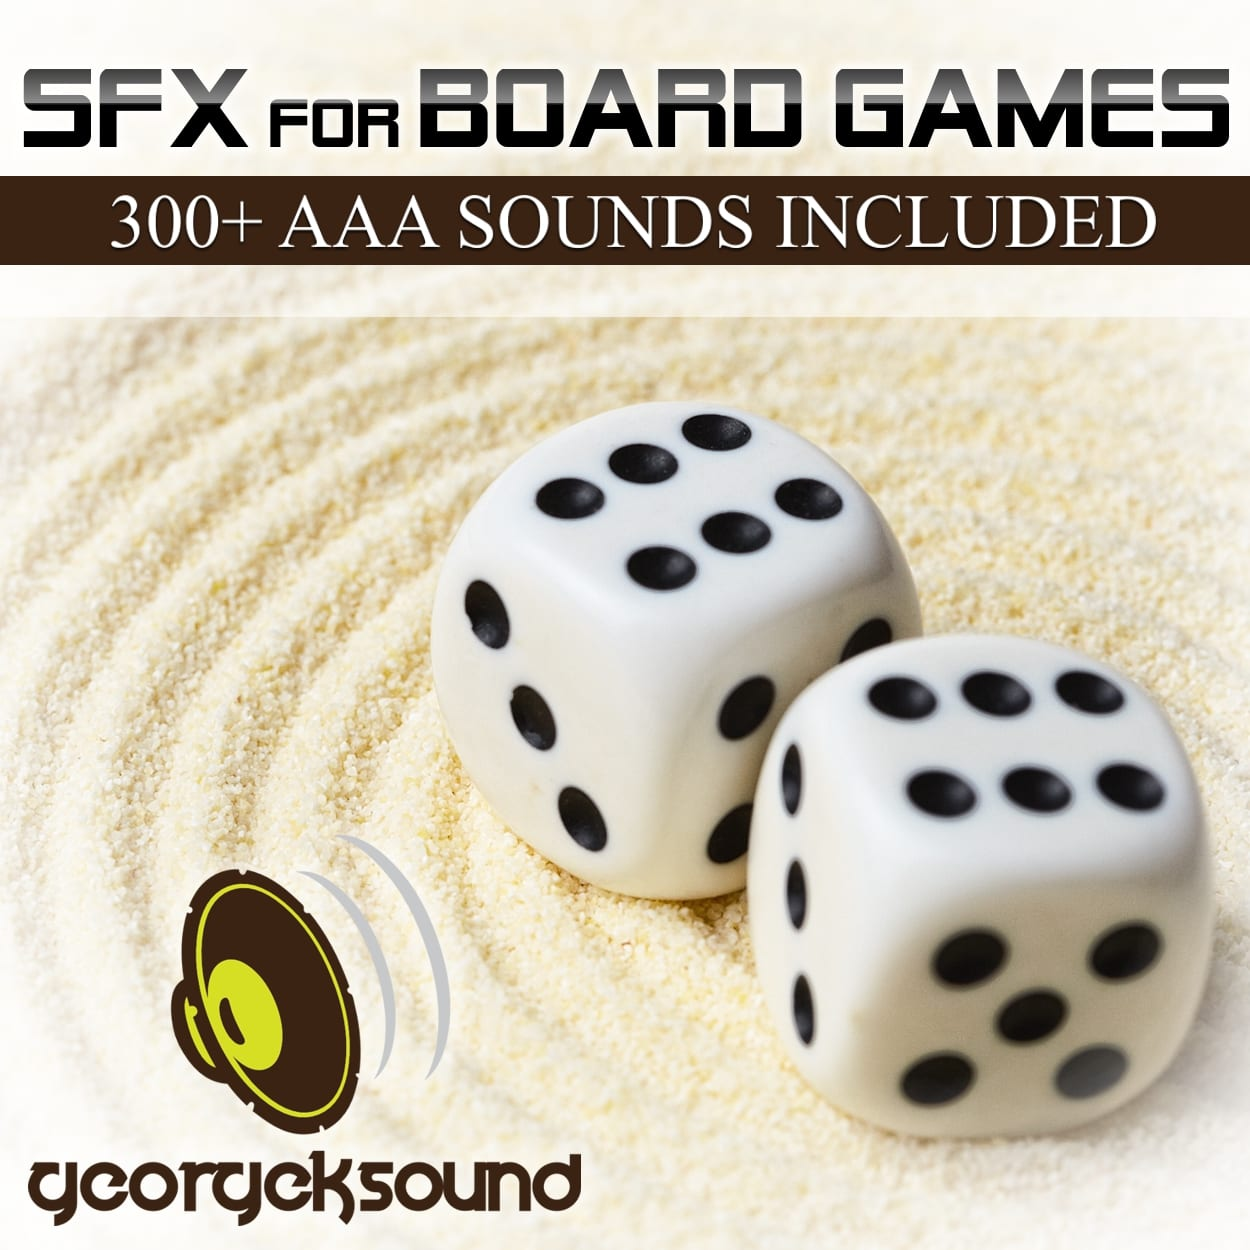 sfx for board games